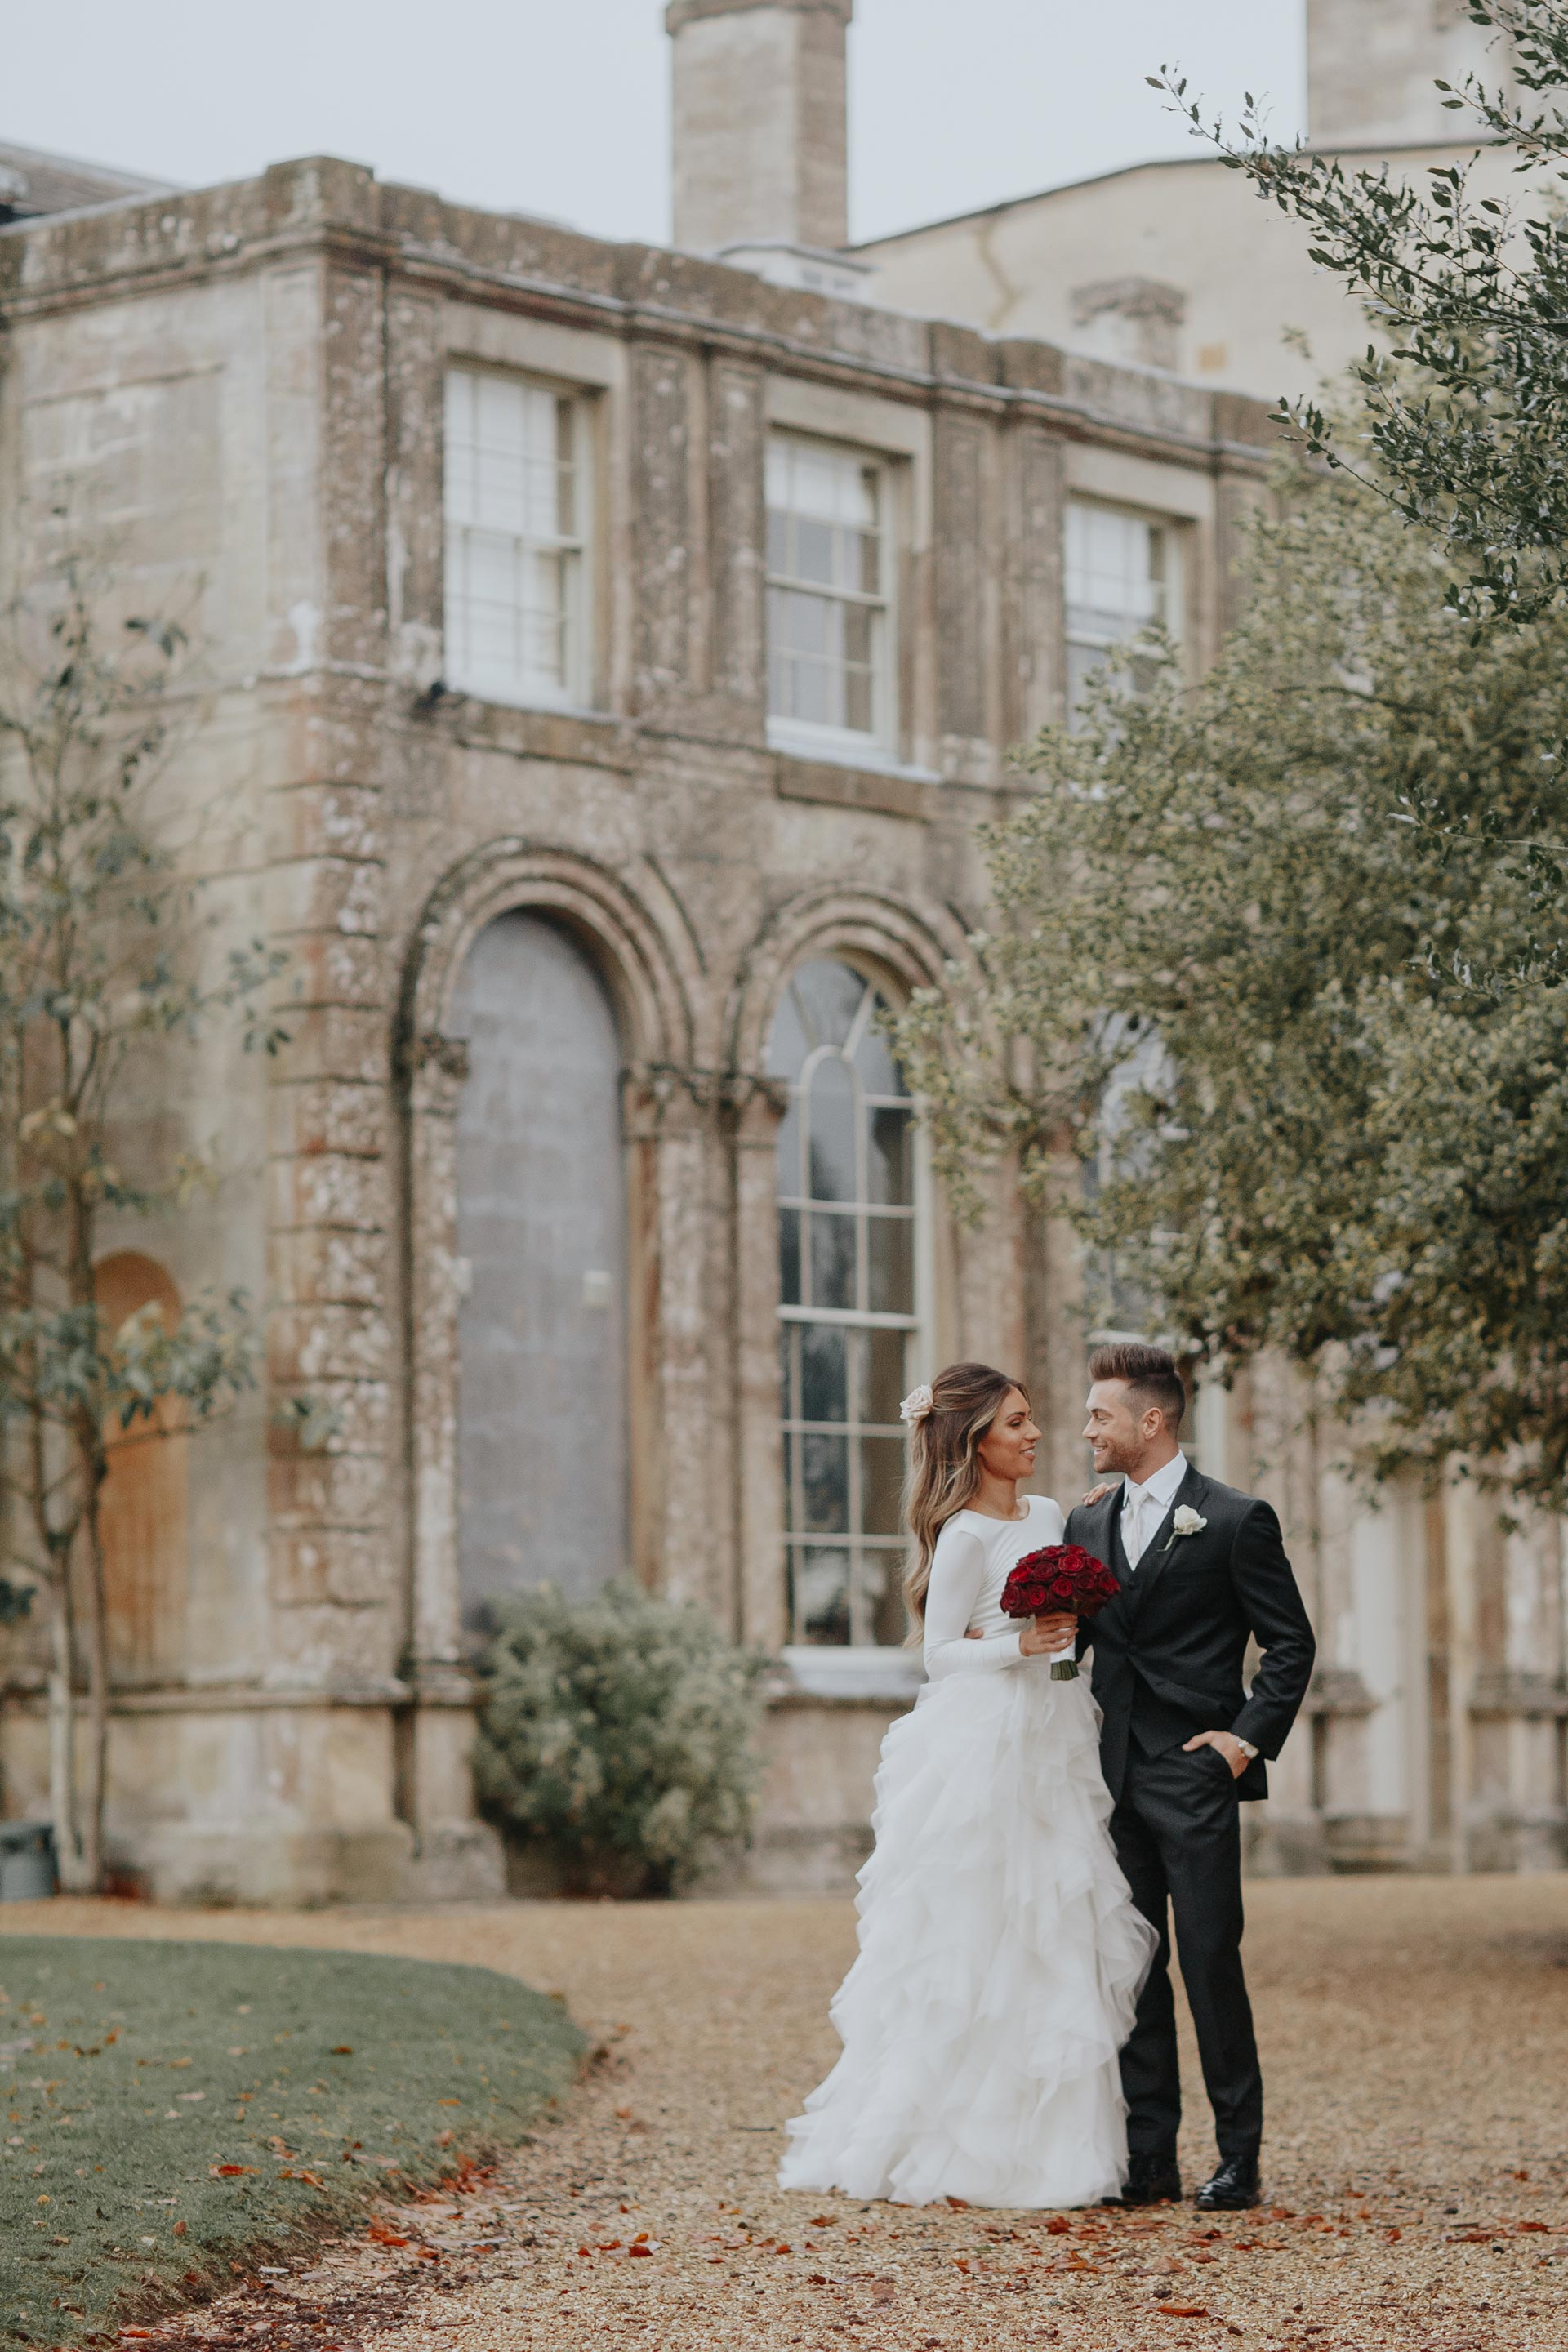 Gorgeous bride Lydia Elise Millen wore a wedding dress by Halfpenny London | Image by Wish Wish Weddings